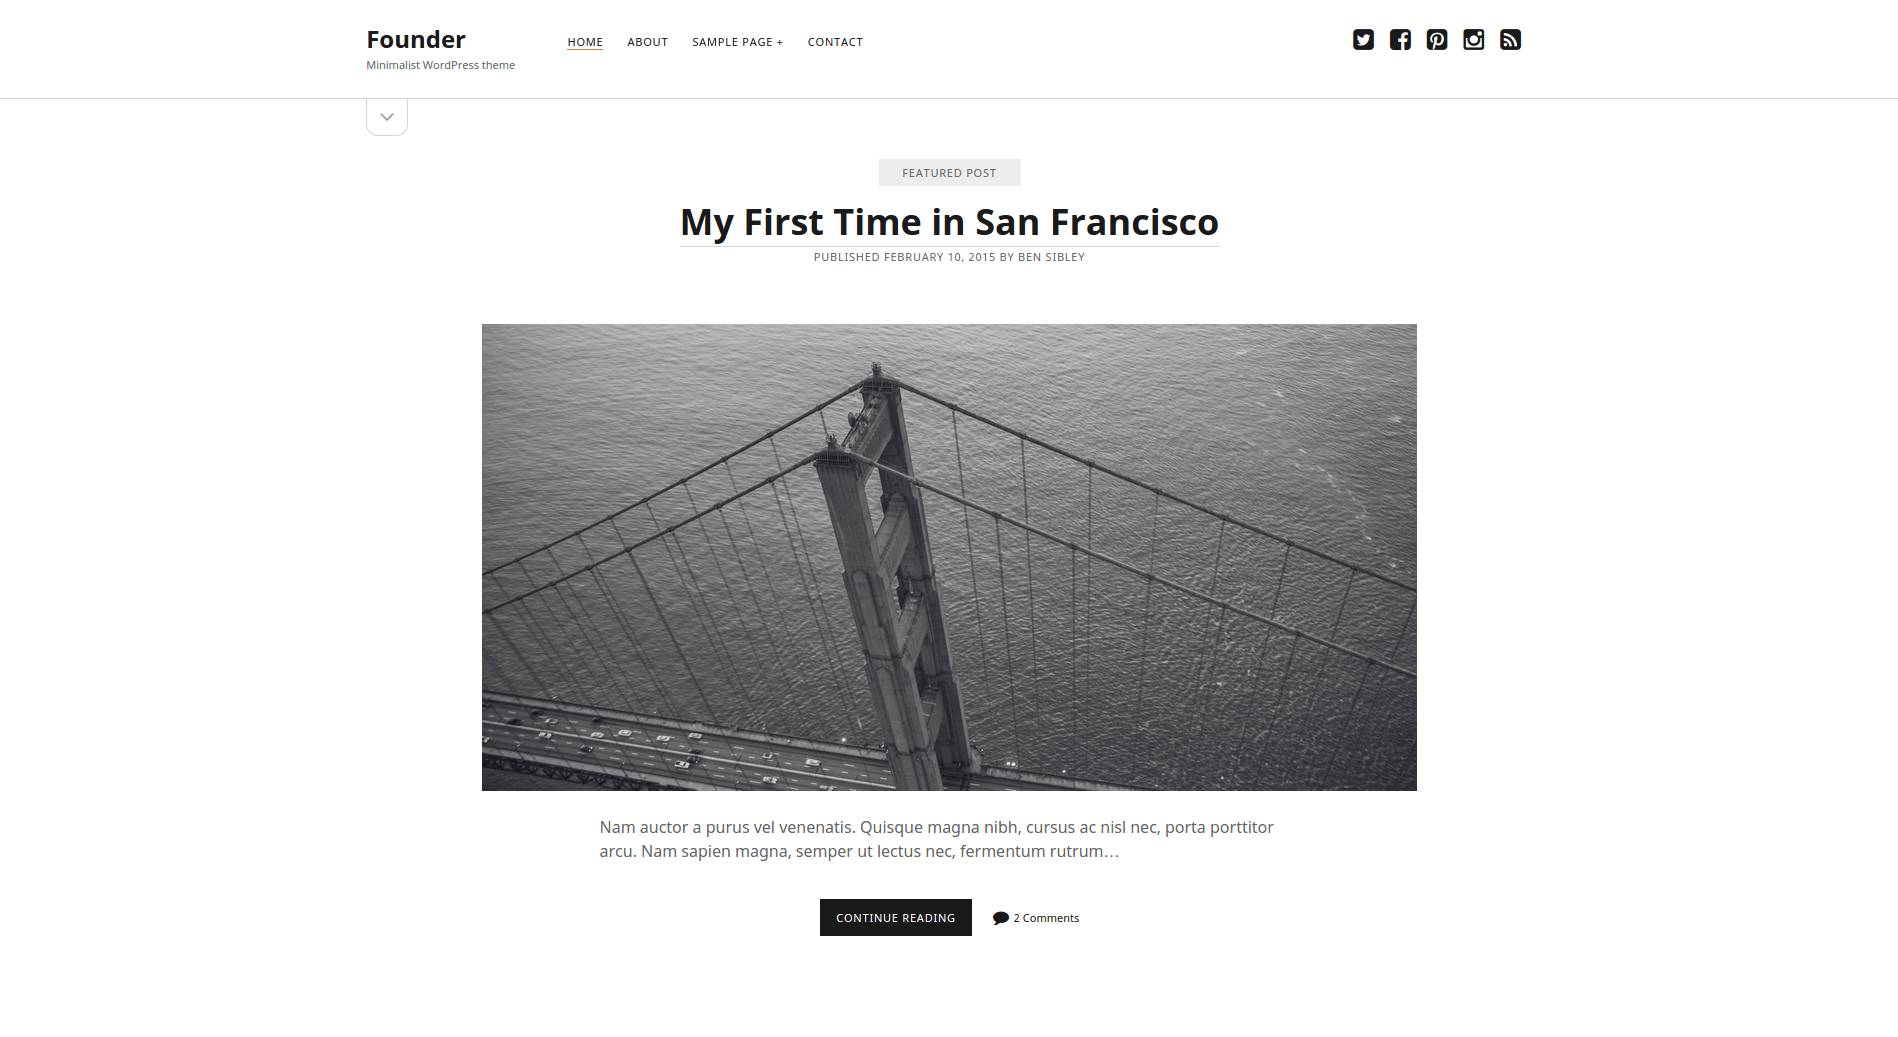 theme-wordpress-founder